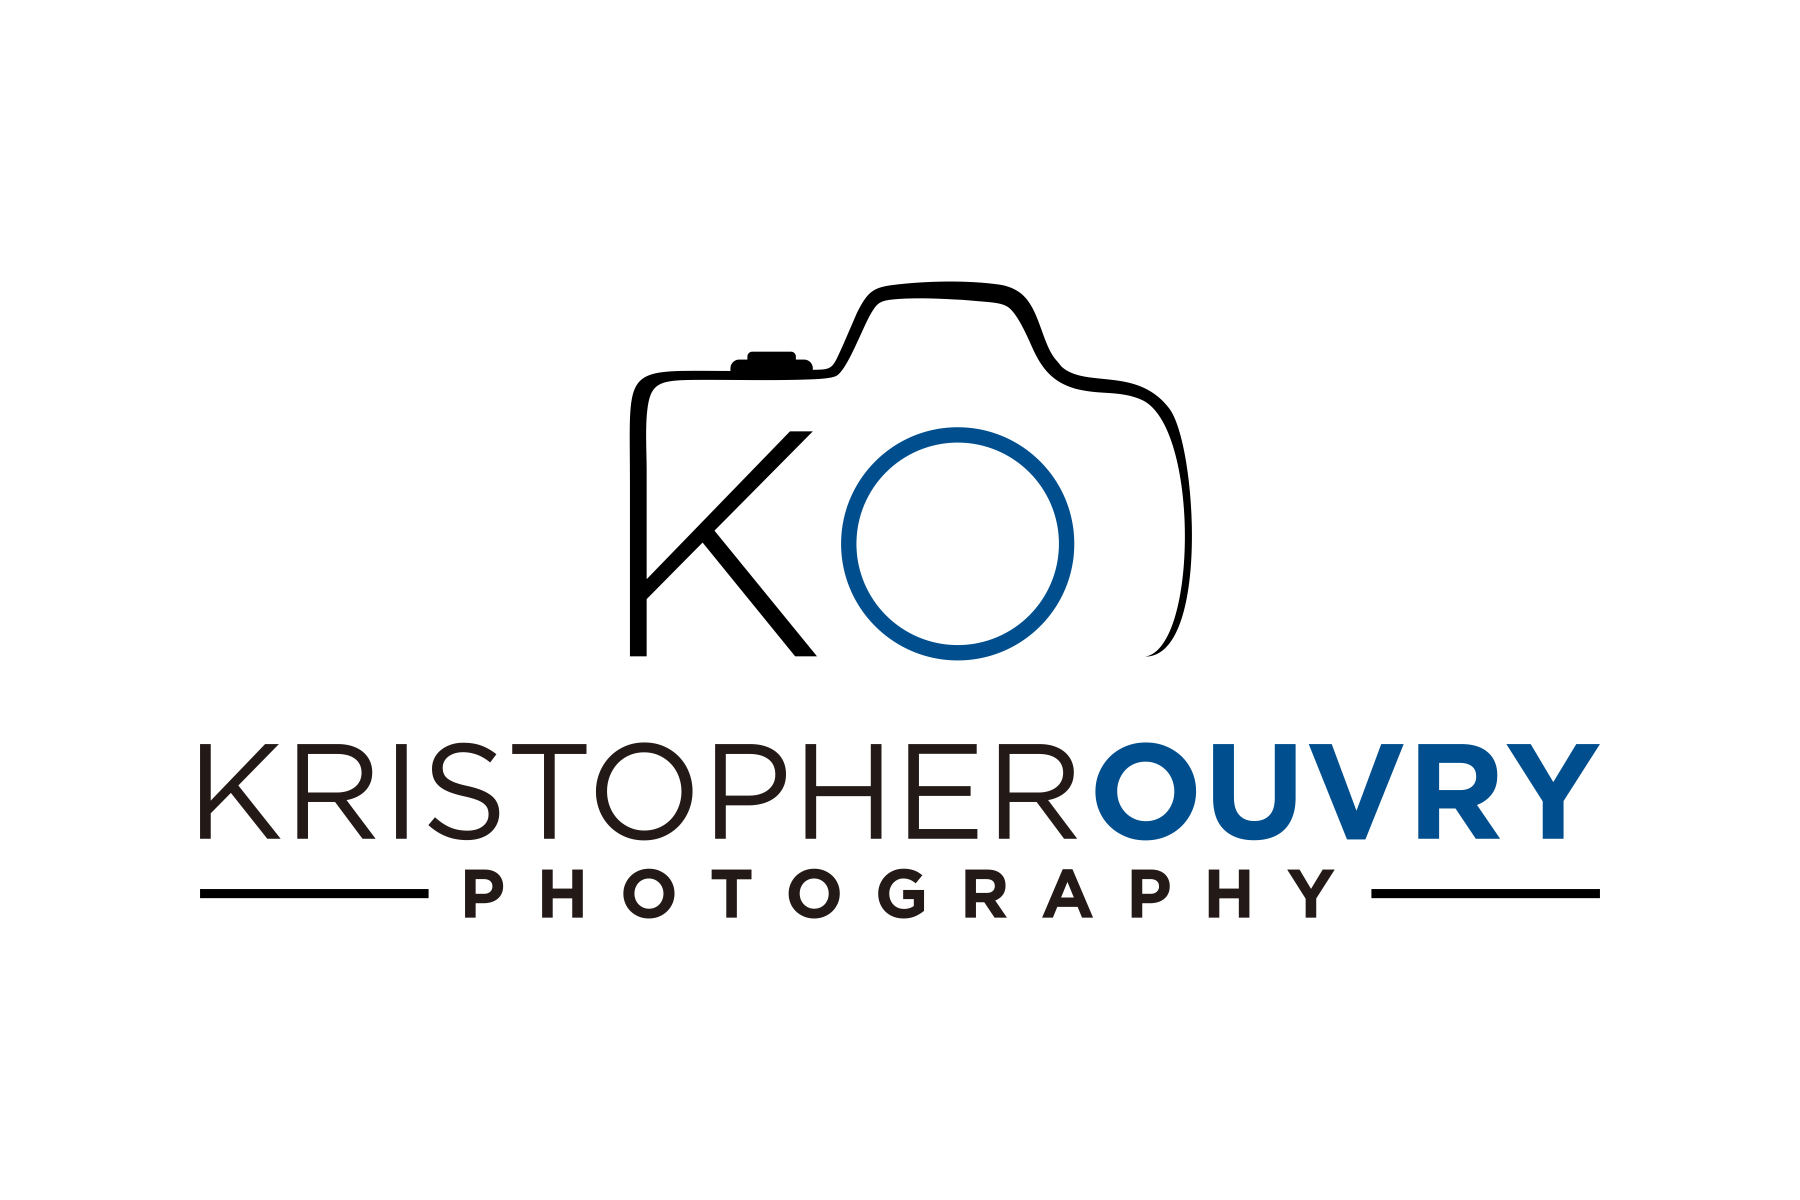 Kristopher Ouvry Photography